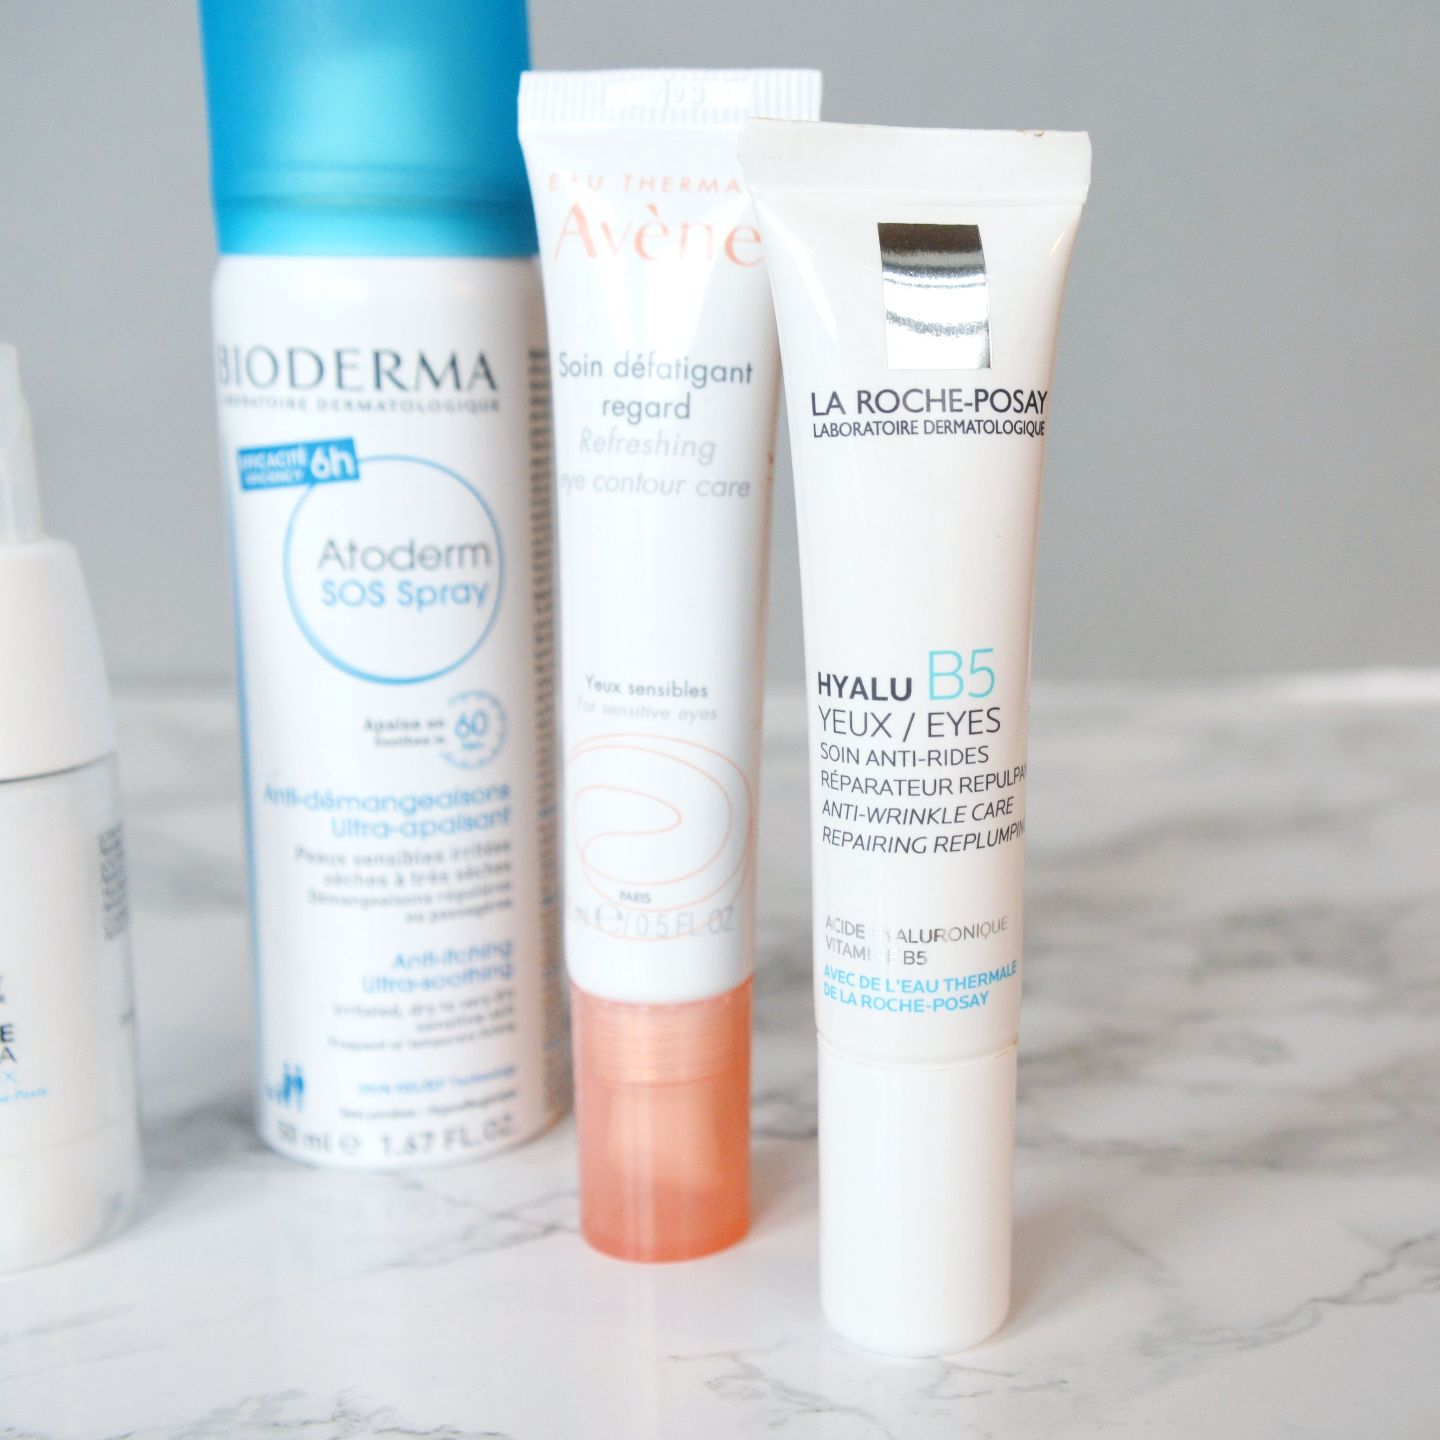 How to soothe sensitive eyes - the products I used to soothe my sebhorreic dermatitis, ocular rosacea. Irritated eyes and skincare advice. #talontedlex